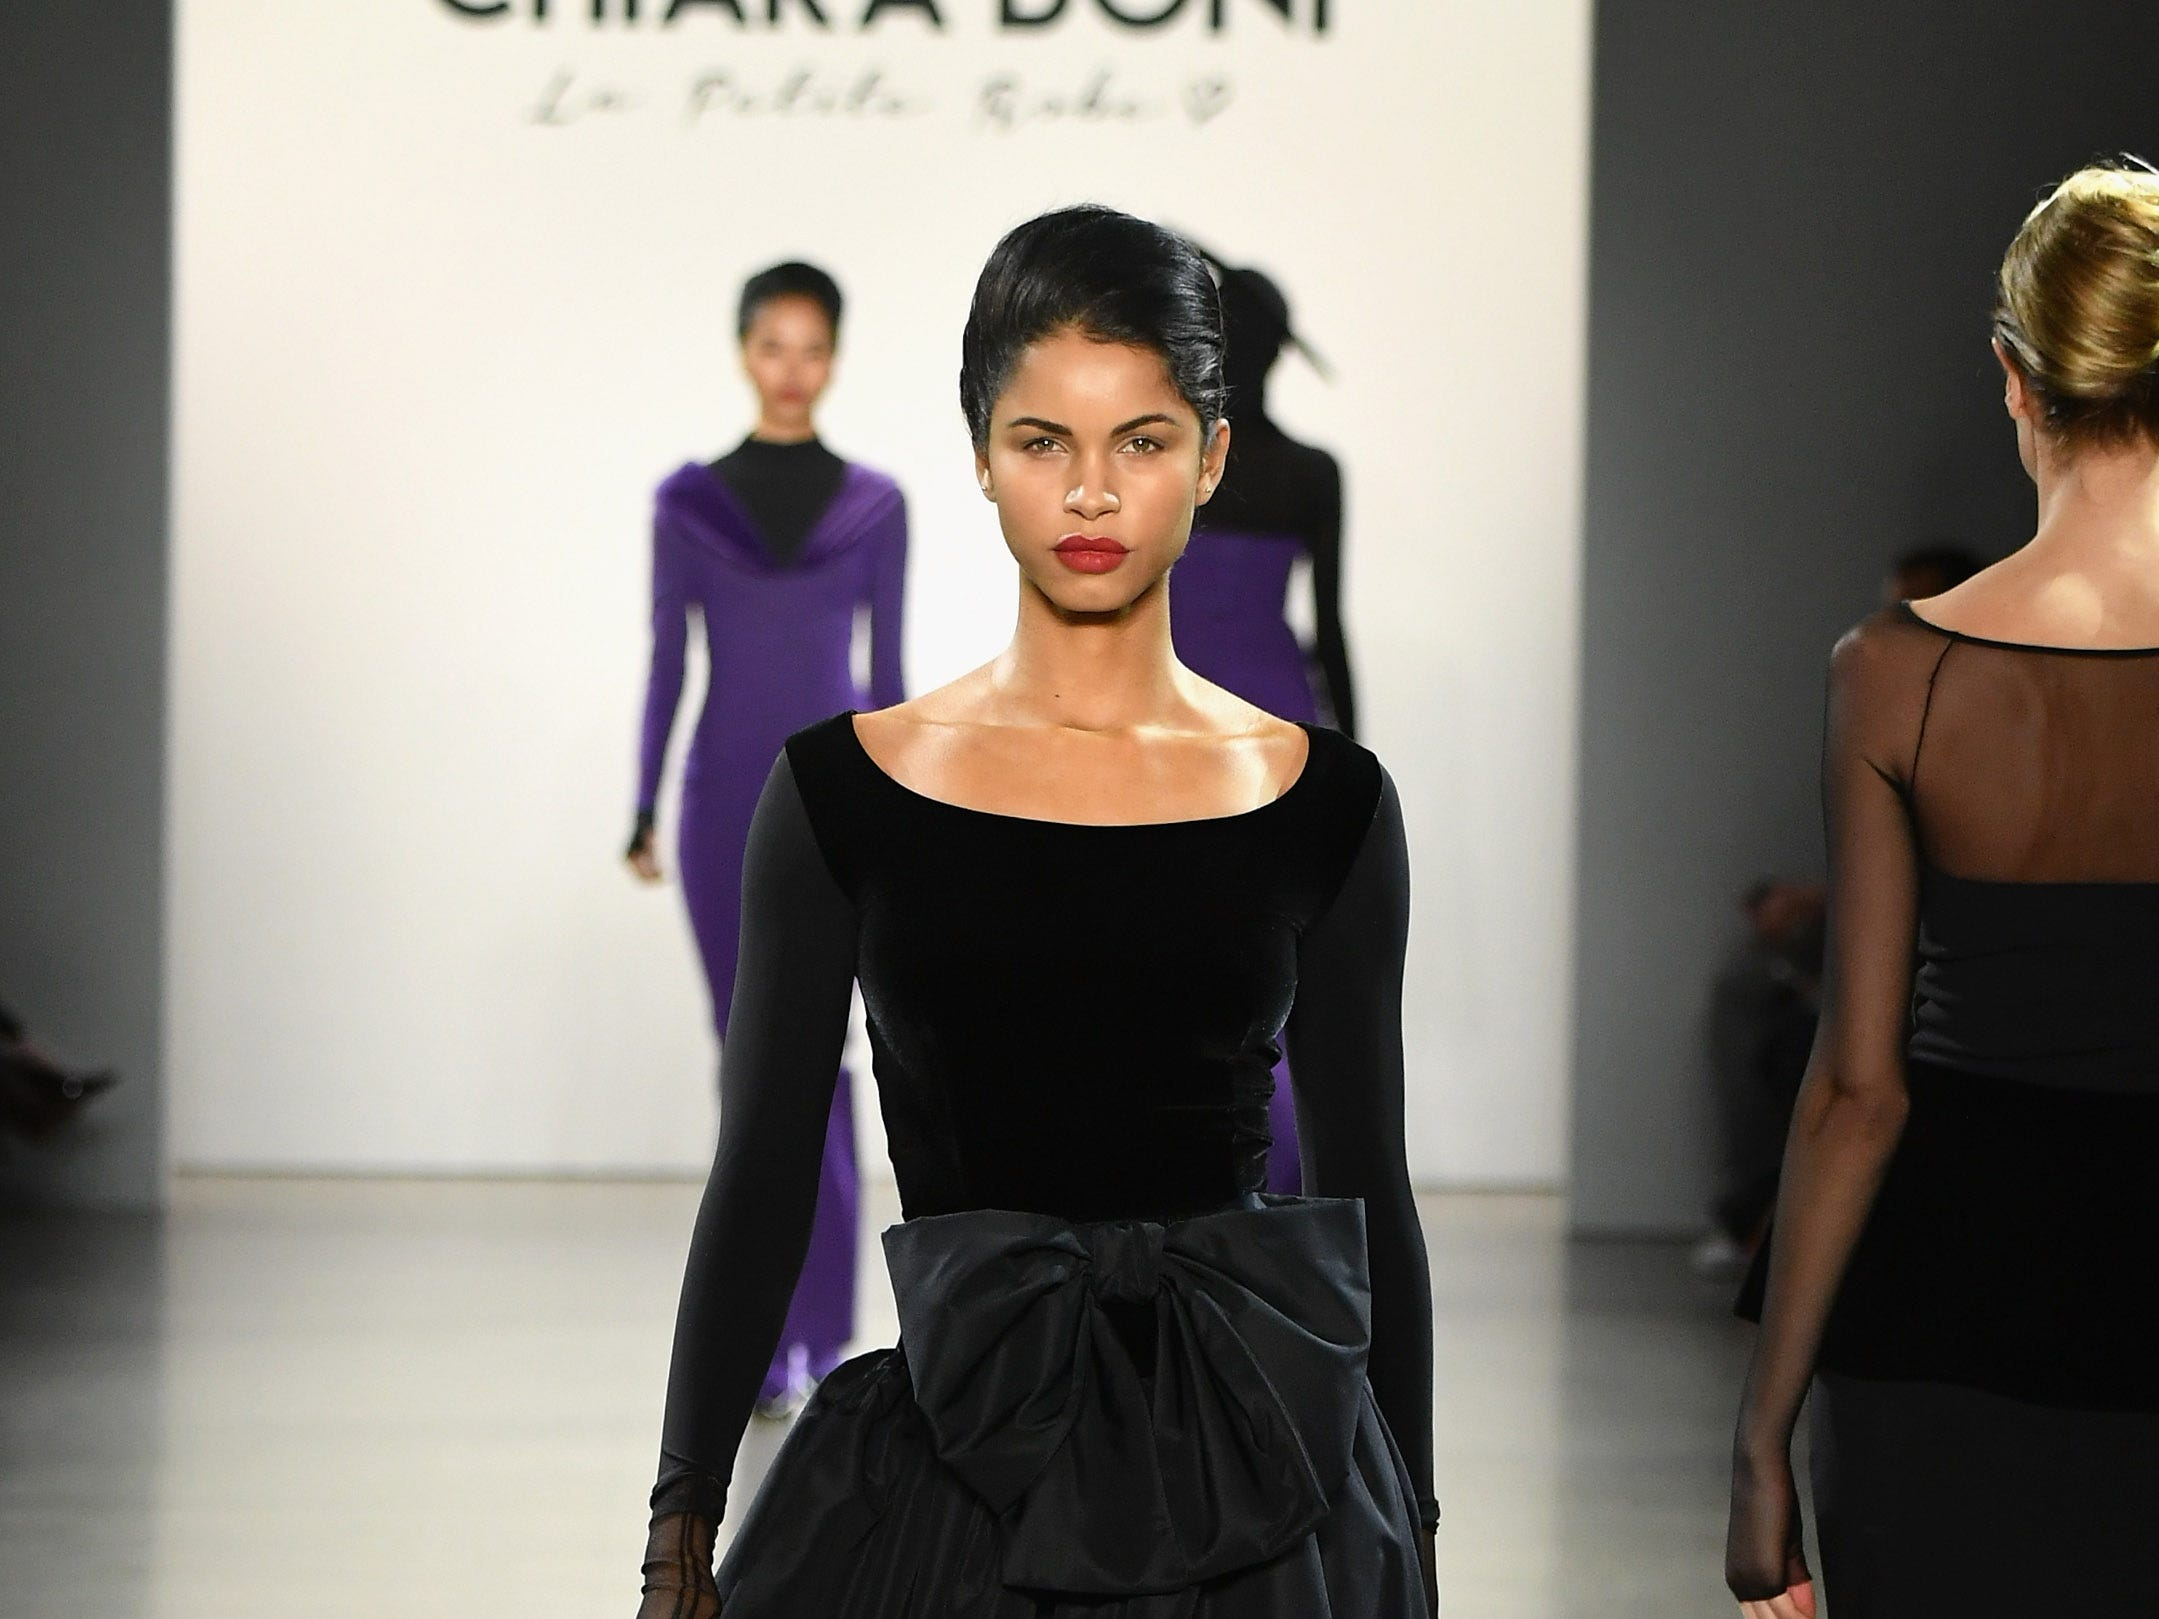 NEW YORK, NY - FEBRUARY 08:  A model walks the runway for the Chiara Boni La Petite Robe fashion show during New York Fashion Week: The Shows at Gallery II at Spring Studios on February 8, 2019 in New York City.  (Photo by Mike Coppola/Getty Images for NYFW: The Shows) ORG XMIT: 775289382 ORIG FILE ID: 1095819980